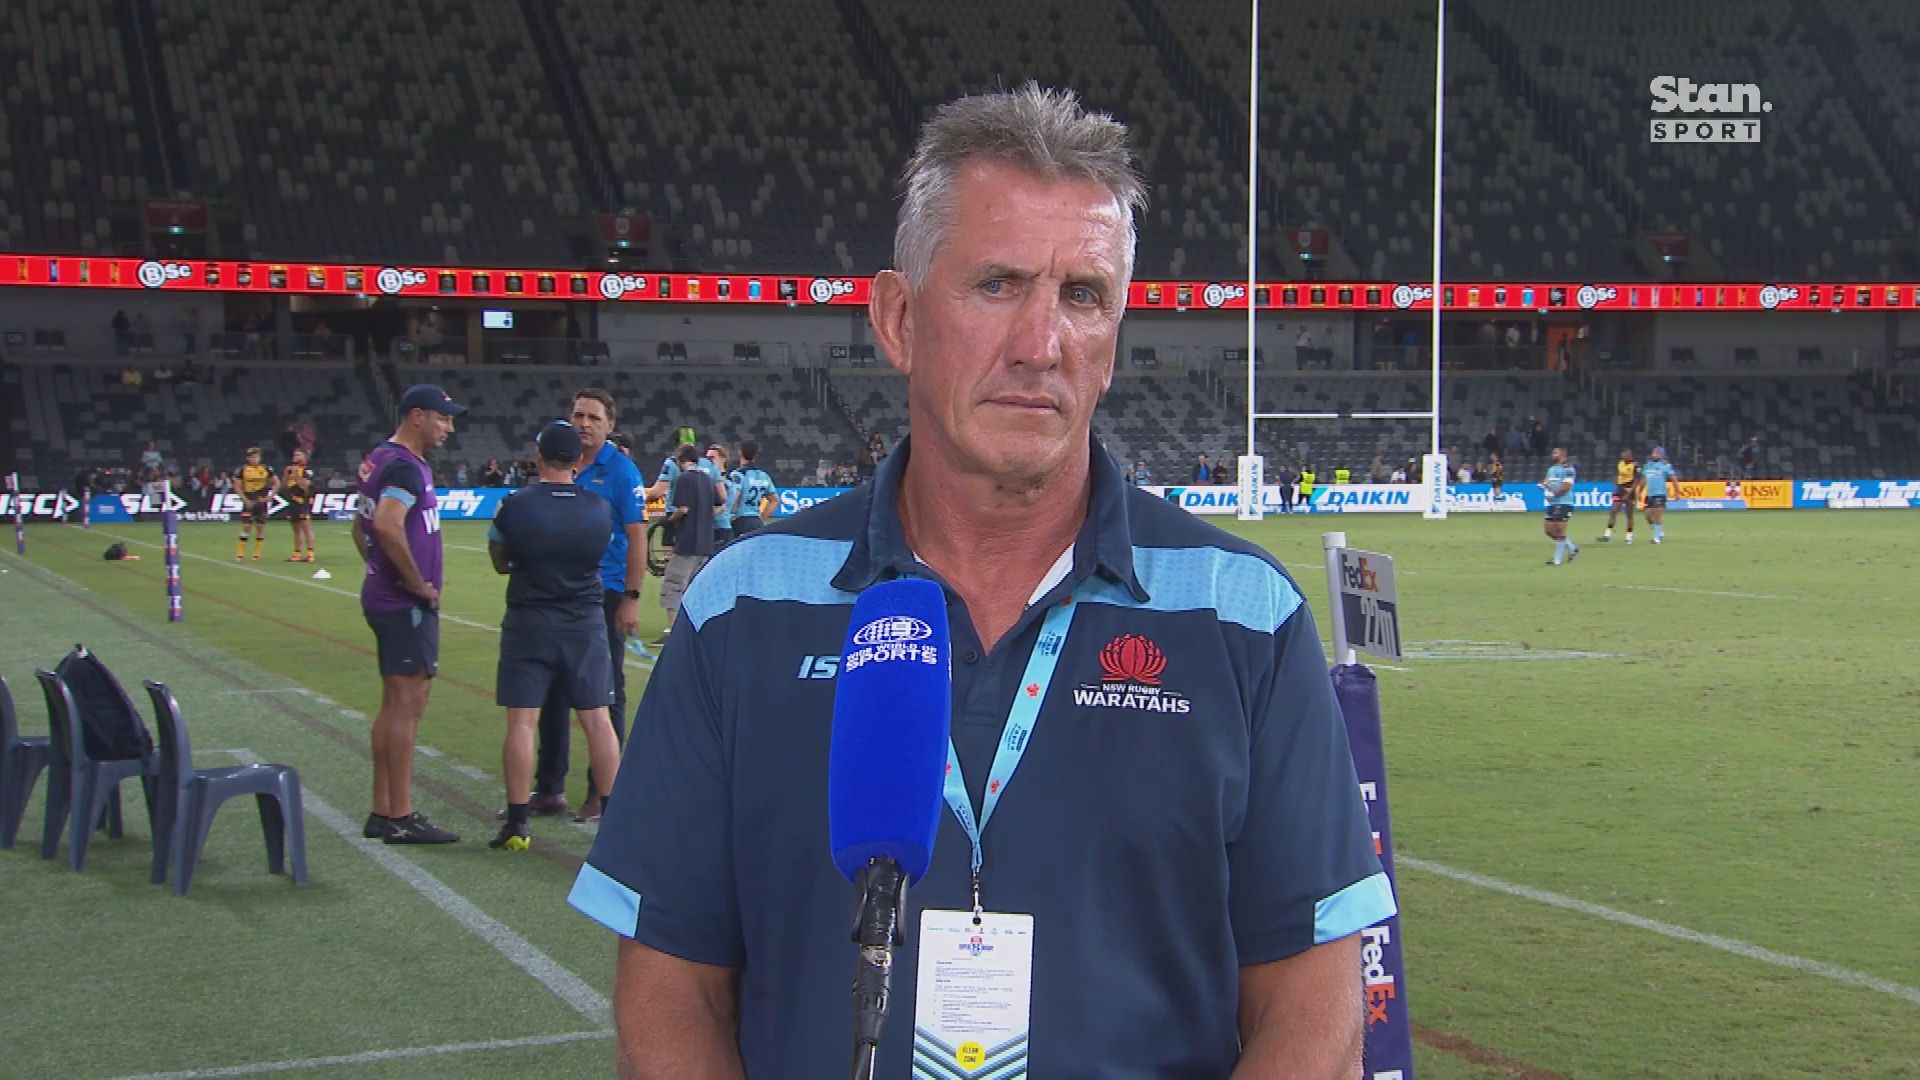 Waratahs coach Rob Penney's testy post-match interview after 20-16 Super Rugby loss to the Force